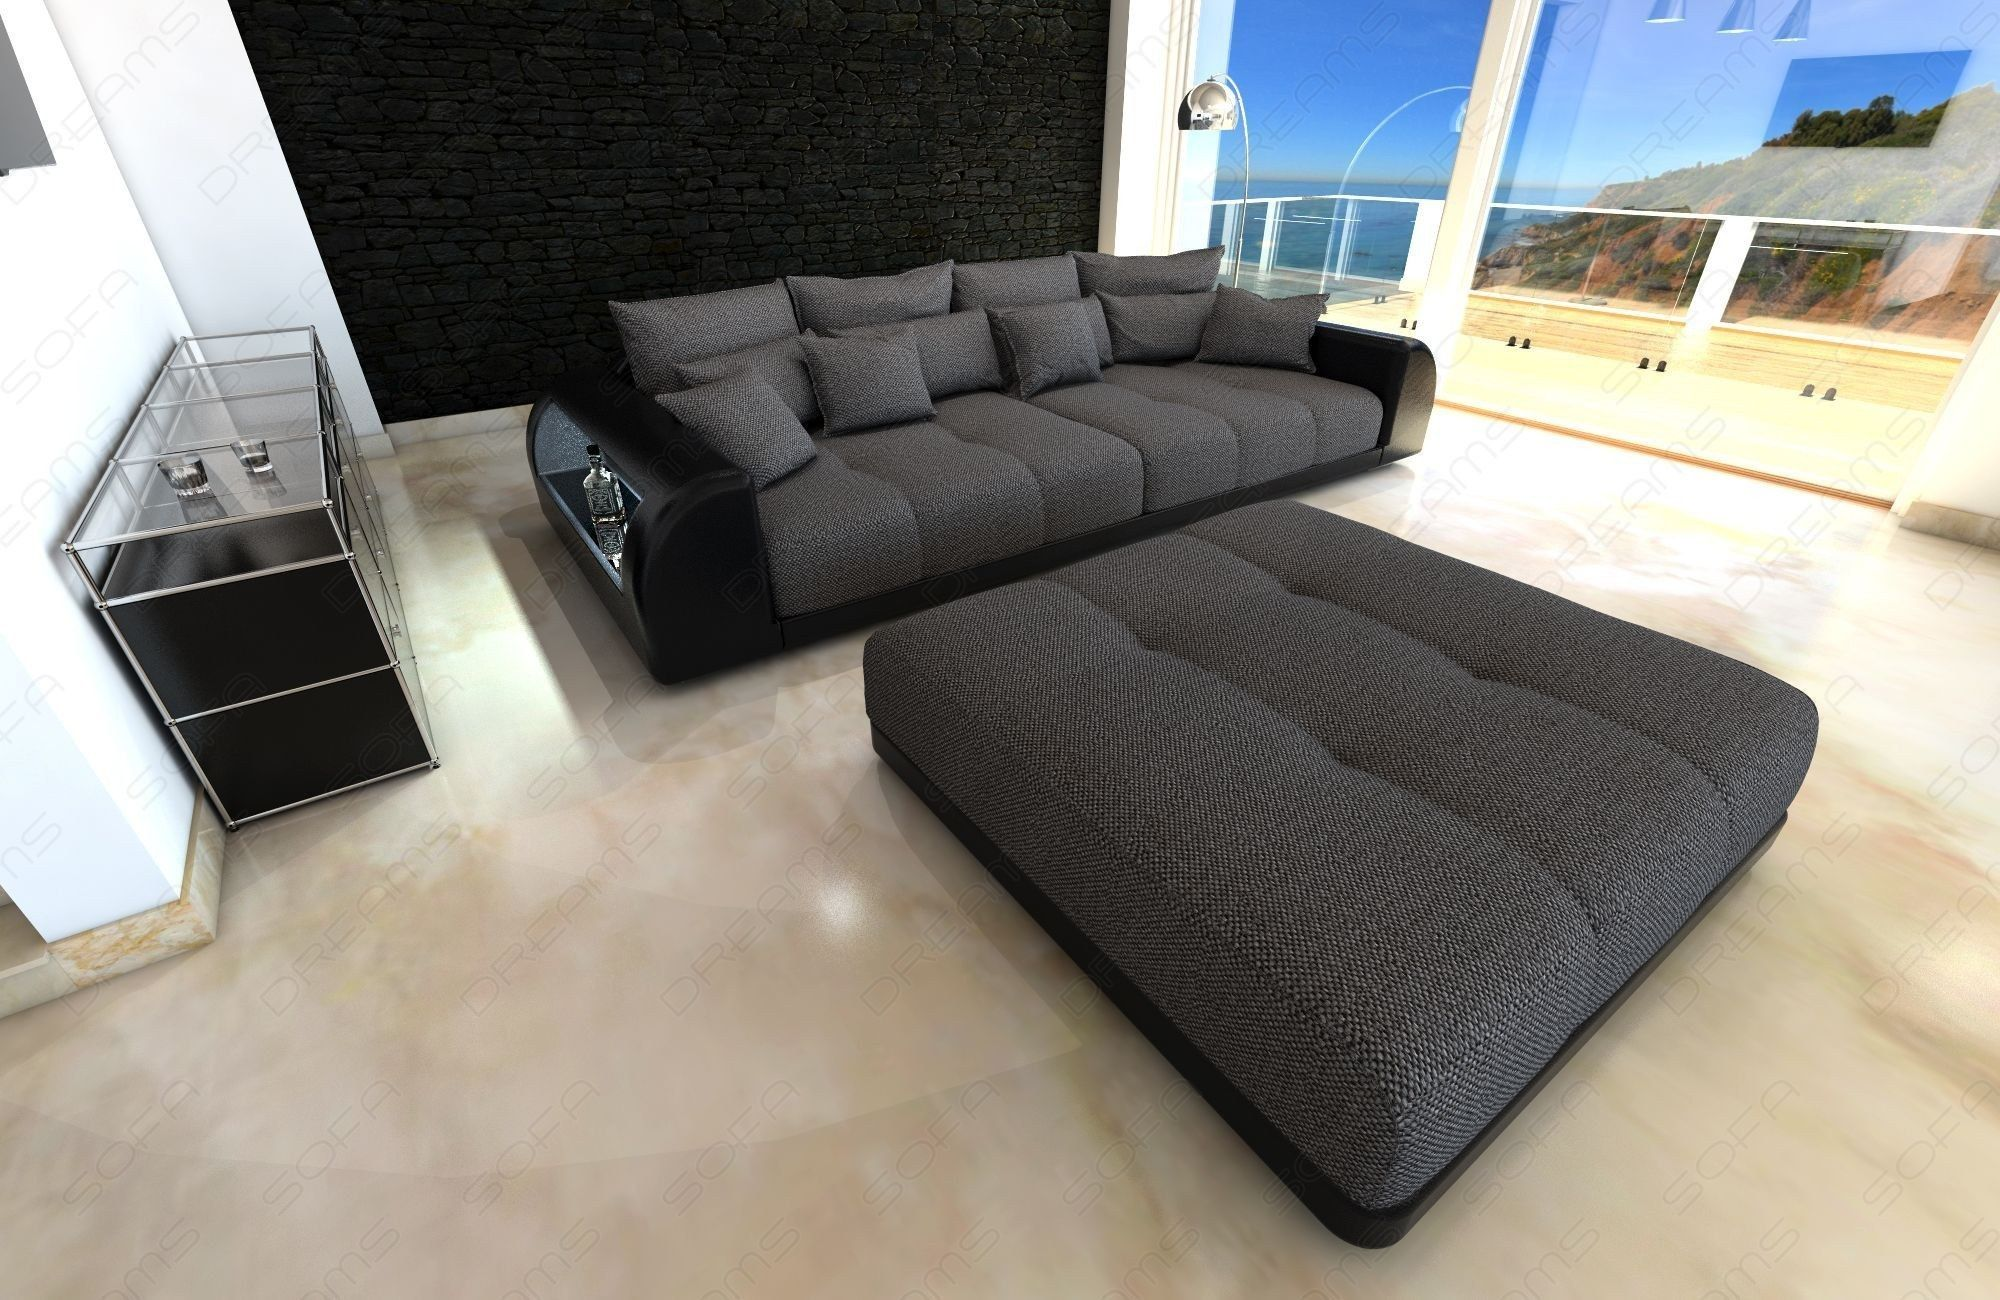 Fabric Big Sofa Miami with LED in 2019 | Big sofas, Sofa bed ...